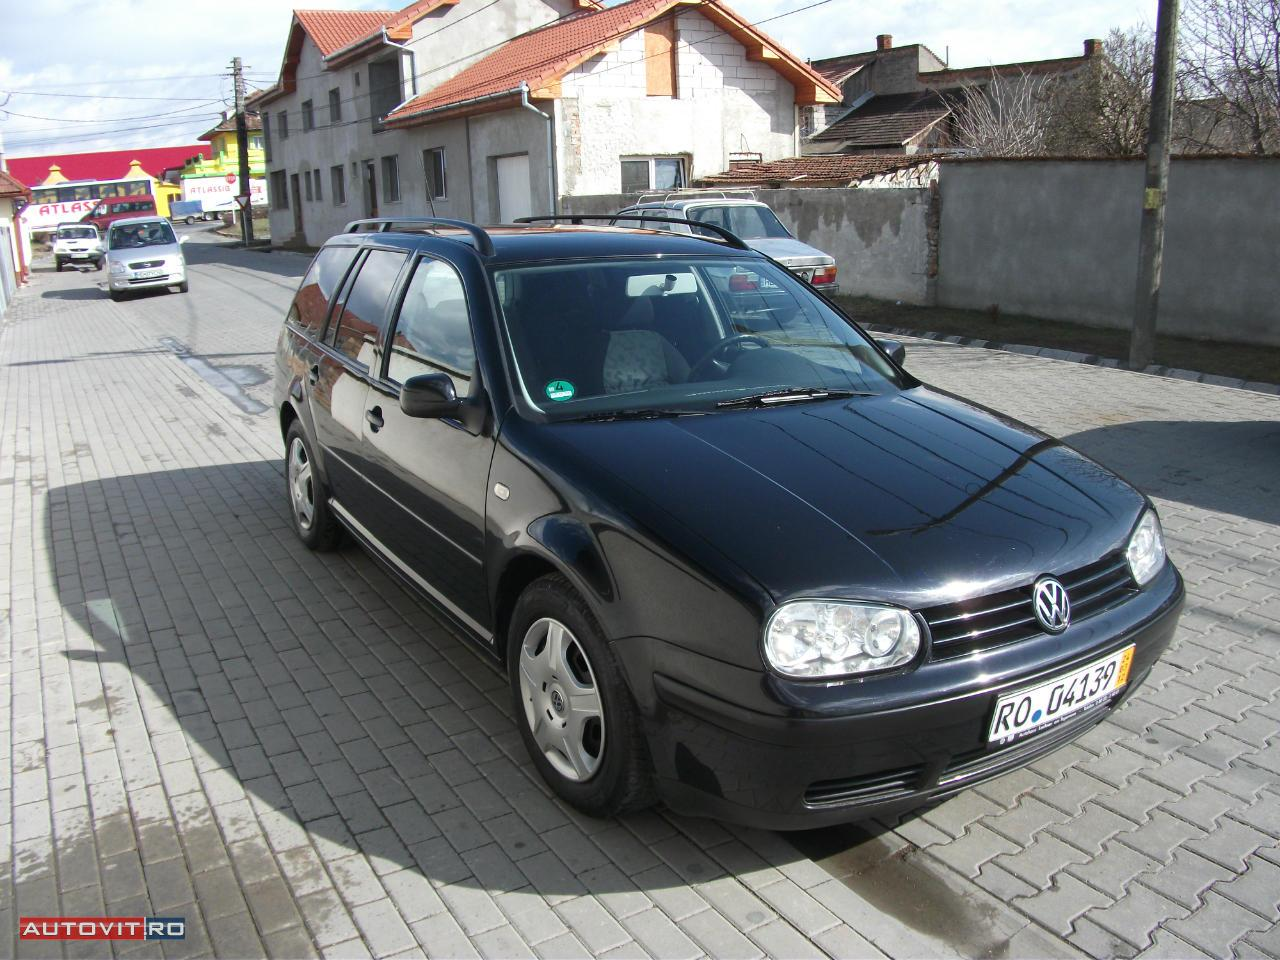 dezmembrez volkswagen golf iv 2001 diesel berlina 28 iunie 2012 15552. Black Bedroom Furniture Sets. Home Design Ideas